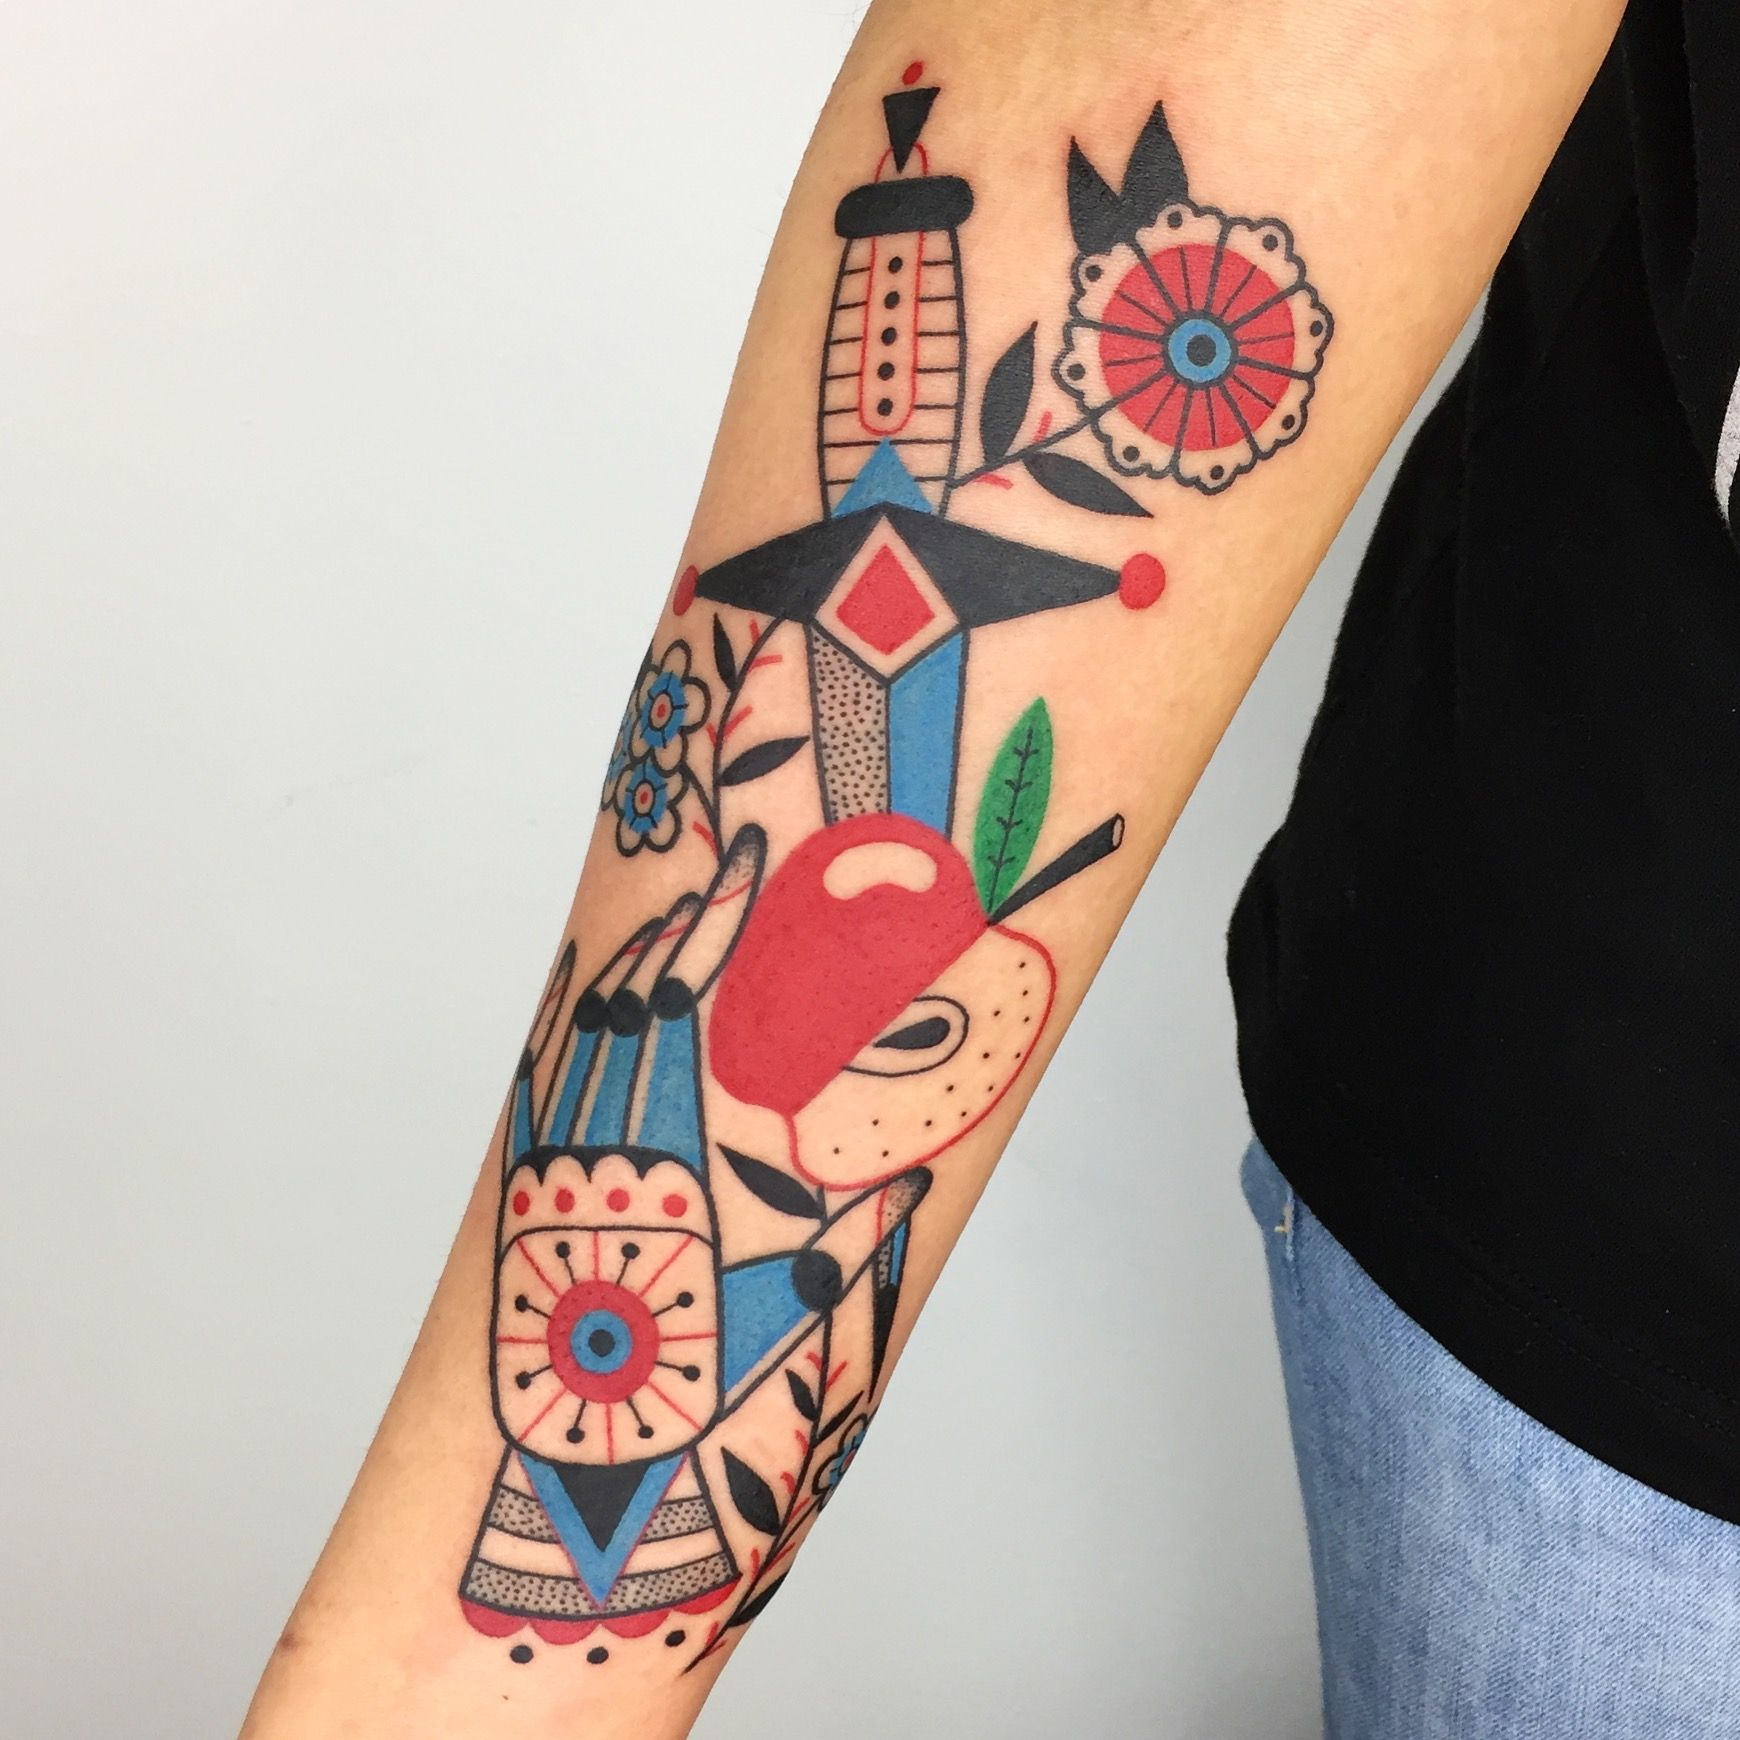 Winston The Whale Hand Apple Dagger And Flower Tattoo Ideas And Designs